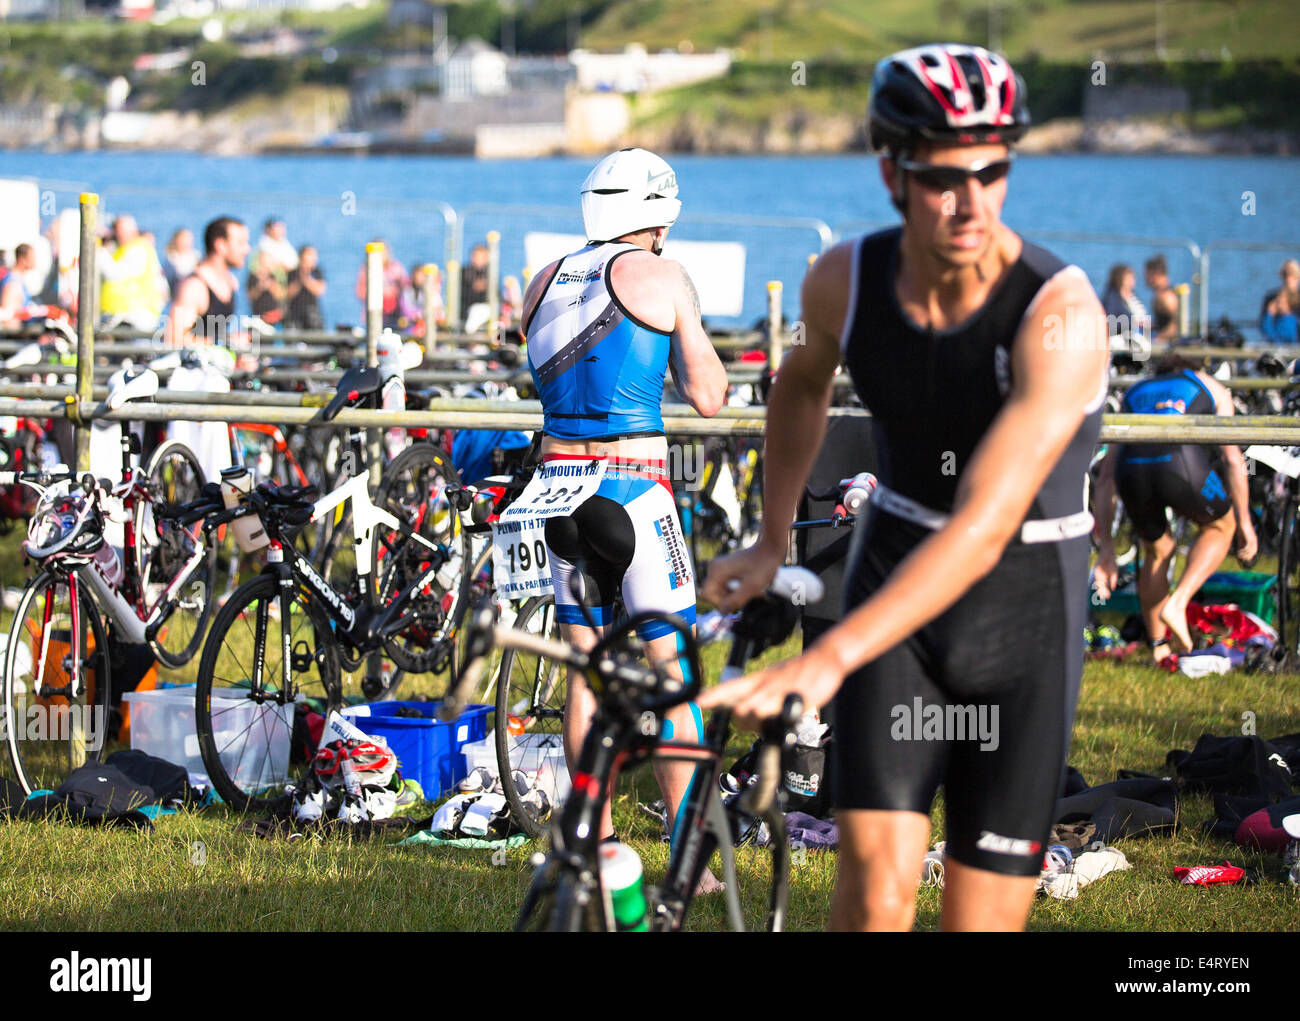 Athletes in transition stage Plymouth triathlon 2014 - Stock Image